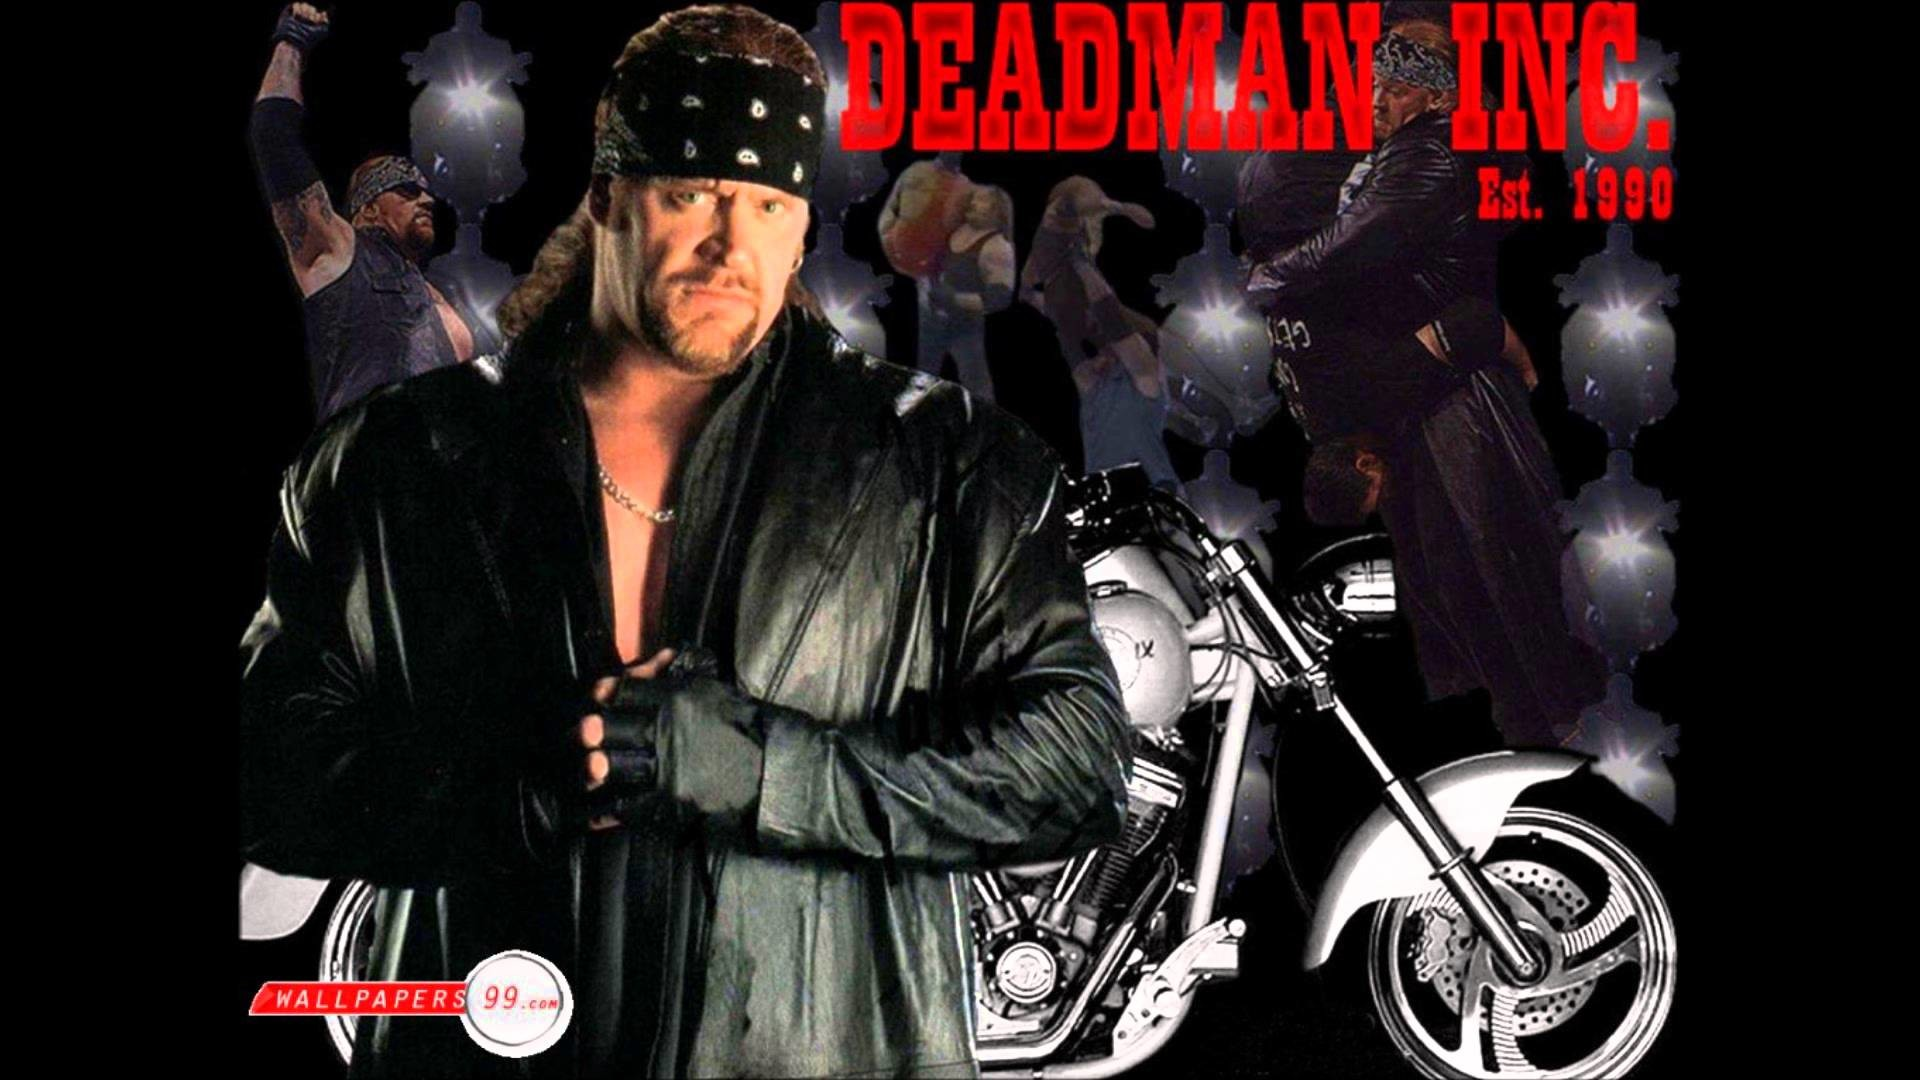 1920x1080 (HD) The Undertaker 8th Theme Song - Rollin' - YouTube